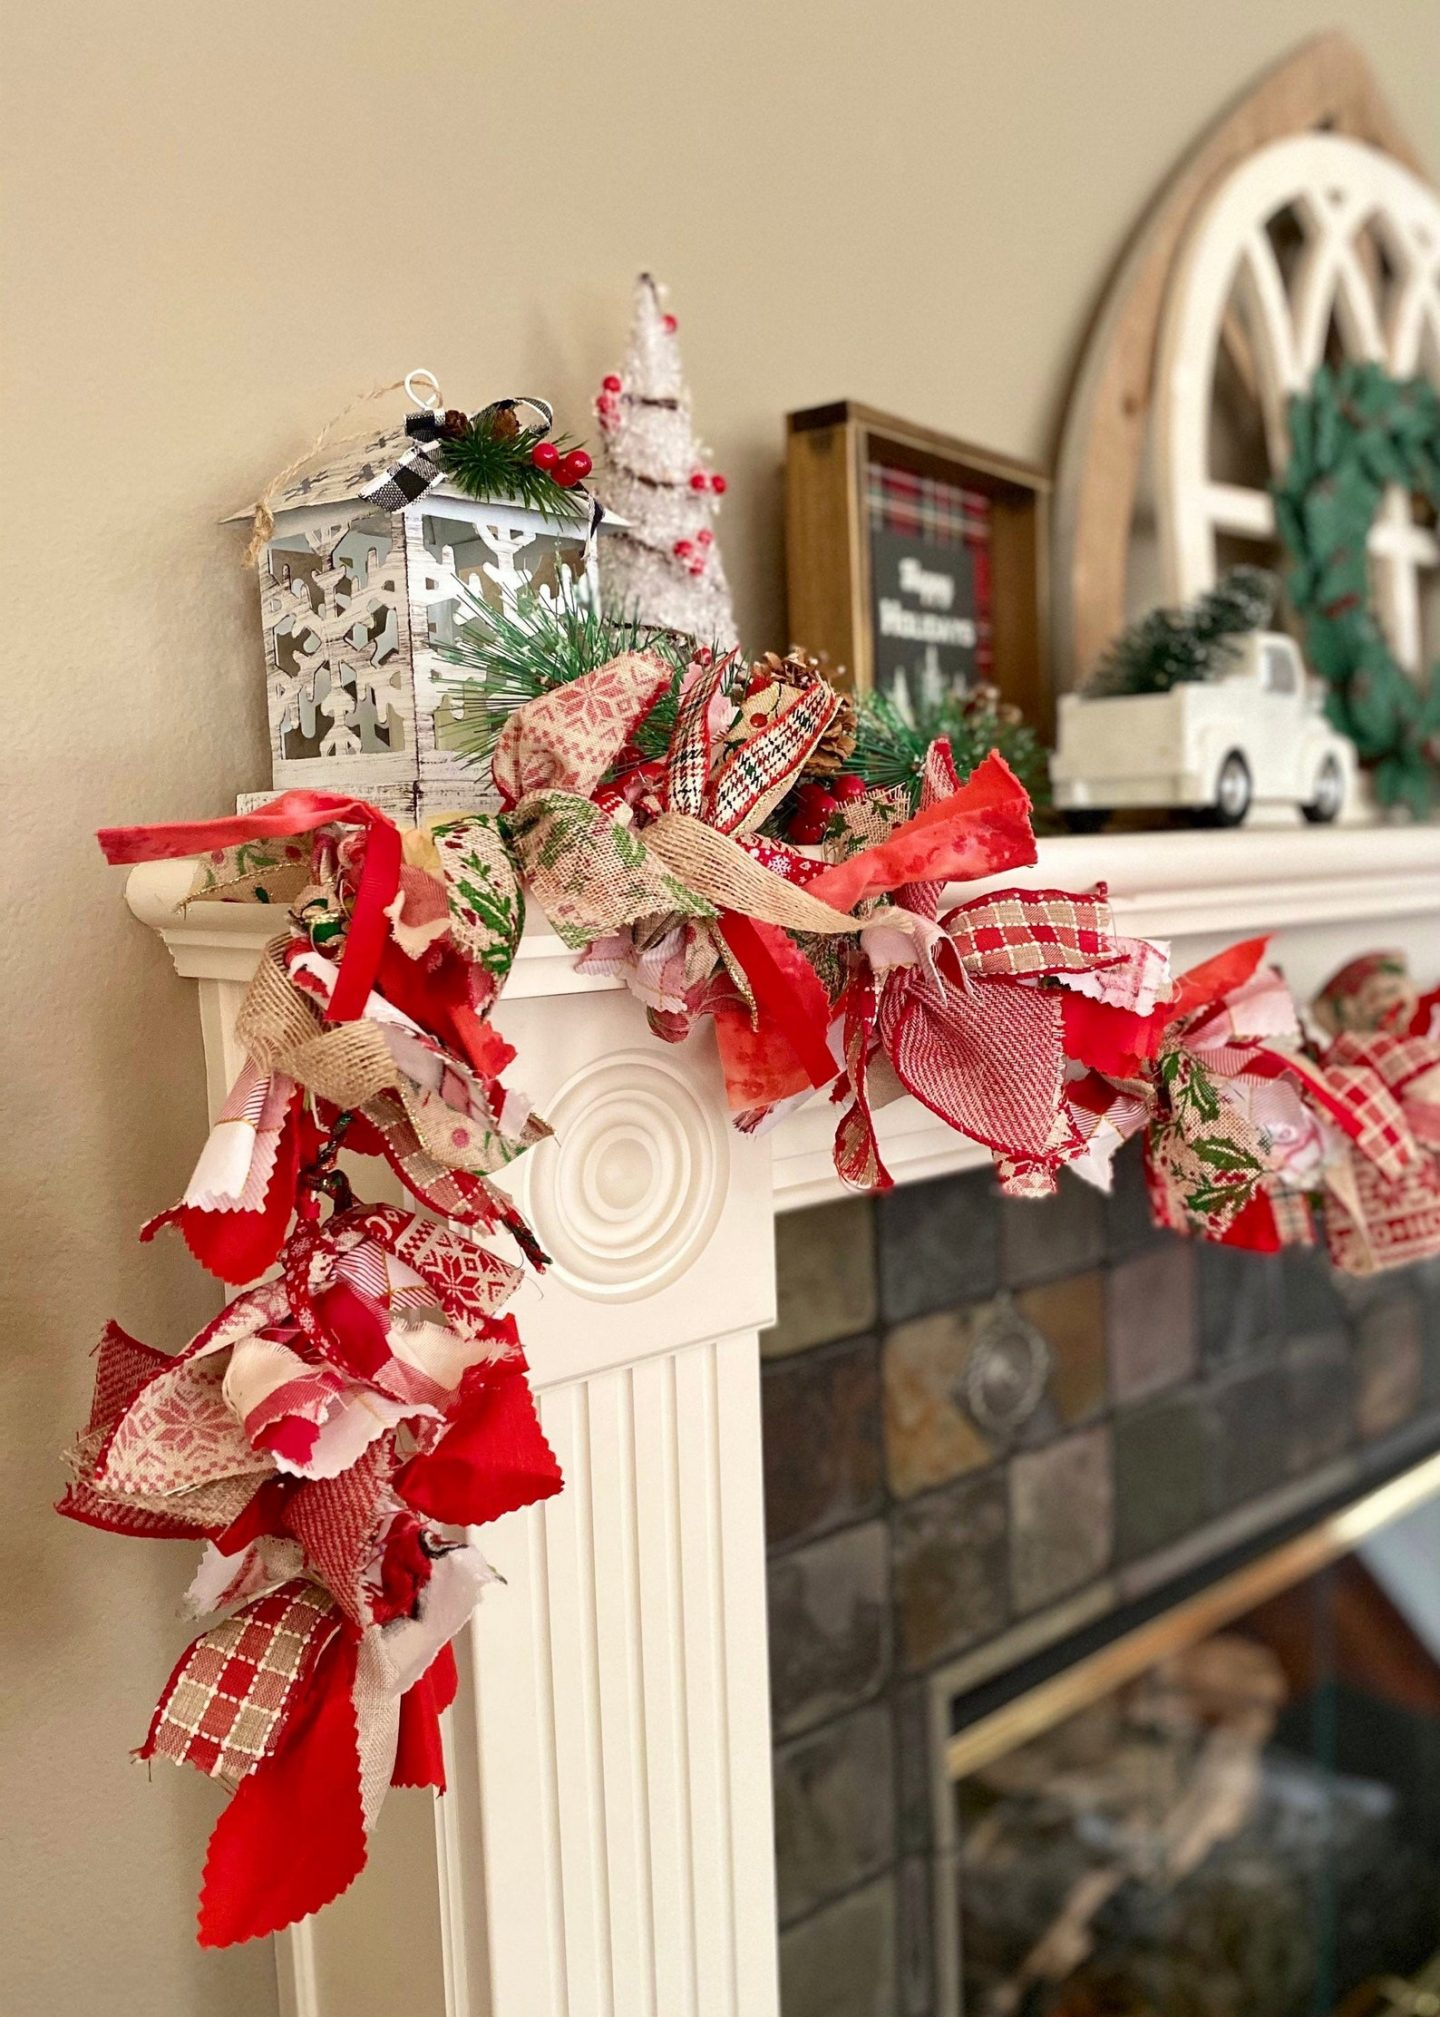 Rustic Red Christmas garland for mantel decor